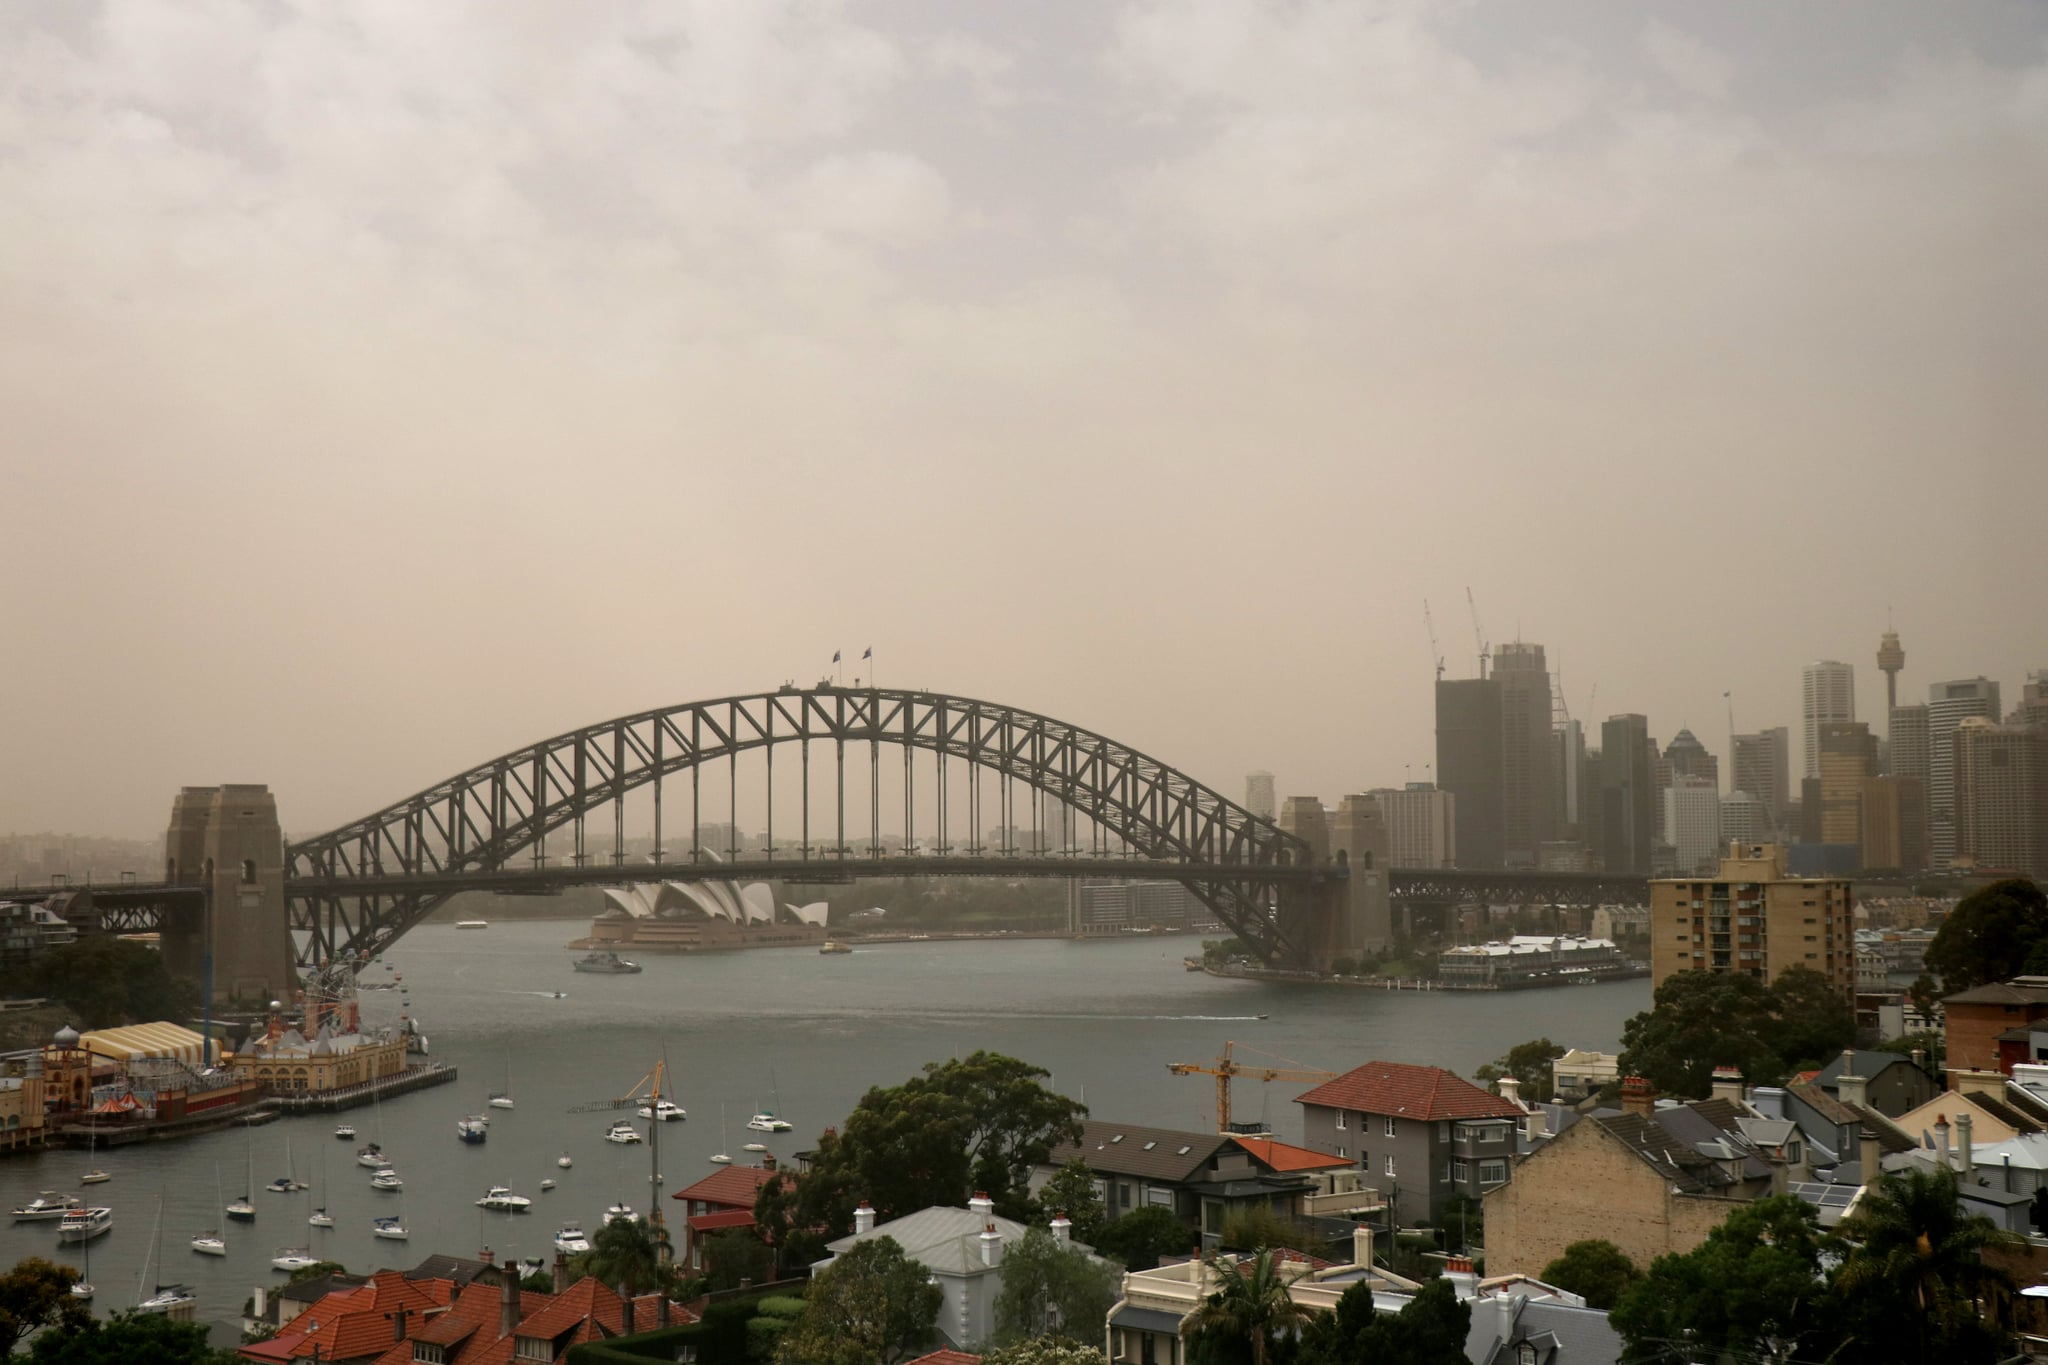 SYDNEY, AUSTRALIA - NOVEMBER 22:  The Sydney Harbour Bridge is seen as a dust storm begins to roll into Sydney on November 22, 2018 in Sydney, Australia. The State Government has issued an air quality warning as a dust storm that blanketed parts of regional NSW reached the outskirts of Sydney this morning.  (Photo by Matt Blyth/Getty Images)